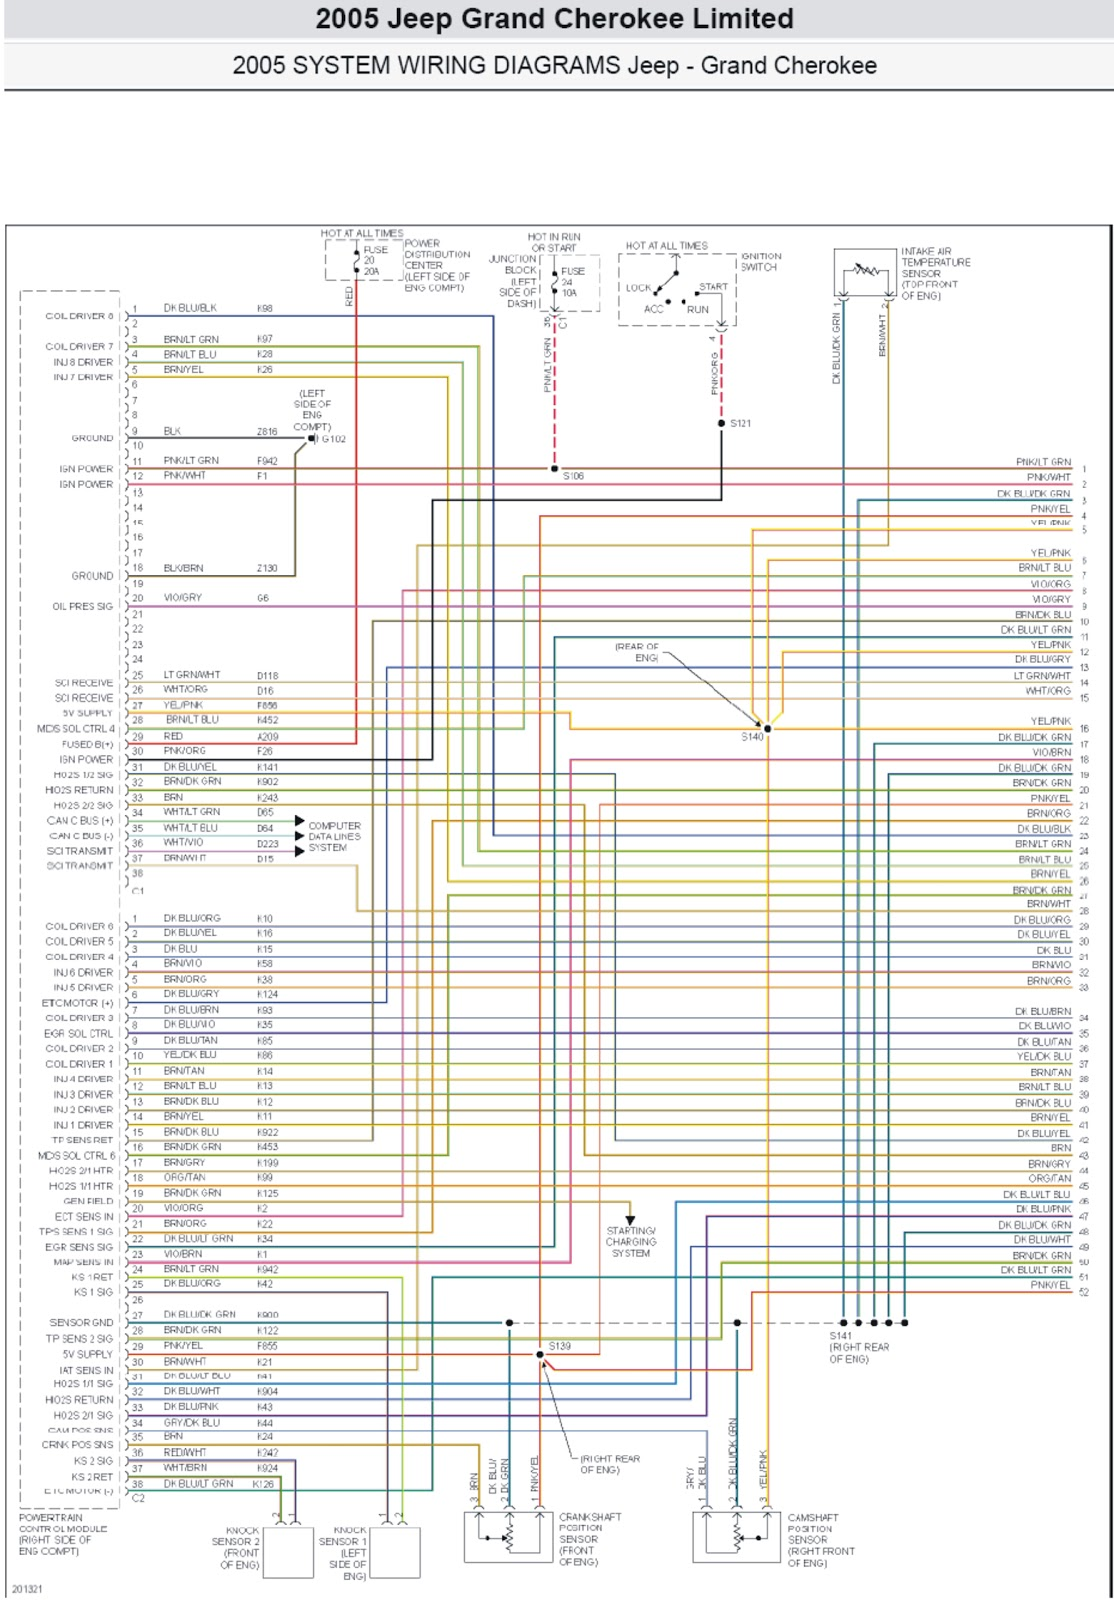 Stereo Wiring Diagram For 1995 Ford Mustang May 2011 Schematic Wiring Diagrams Solutions